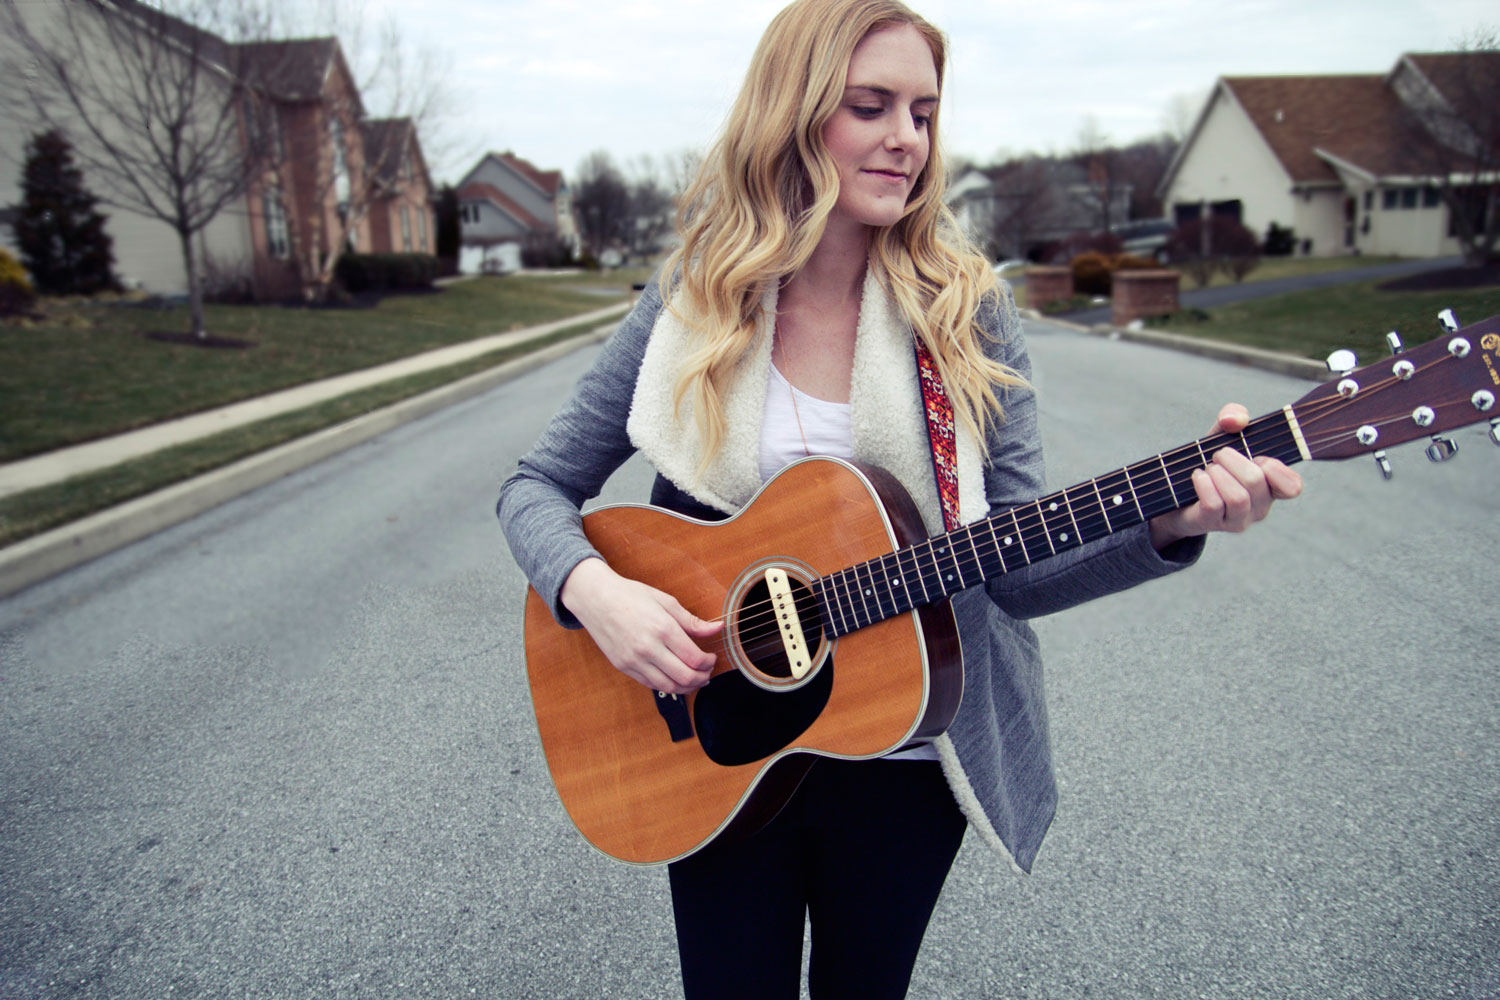 Raw acoustic passion – interview with Megan Davies